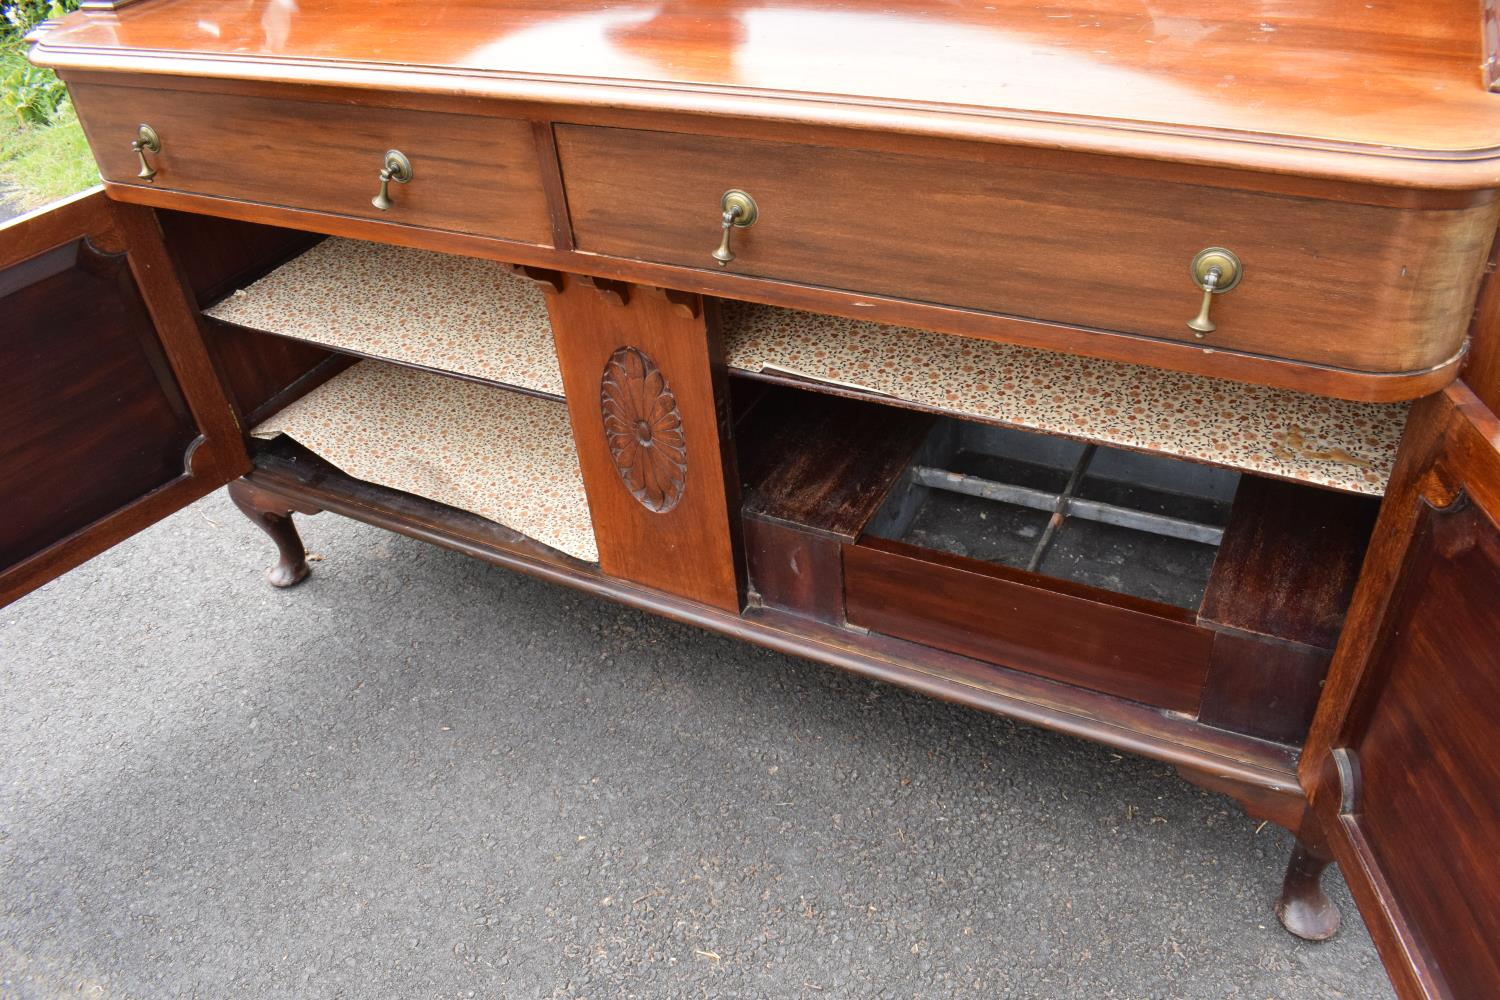 Edwardian mirror backed sideboard/ drinks cabinet. 168 x 56 x 183cm. The top section lifts off and - Image 8 of 11